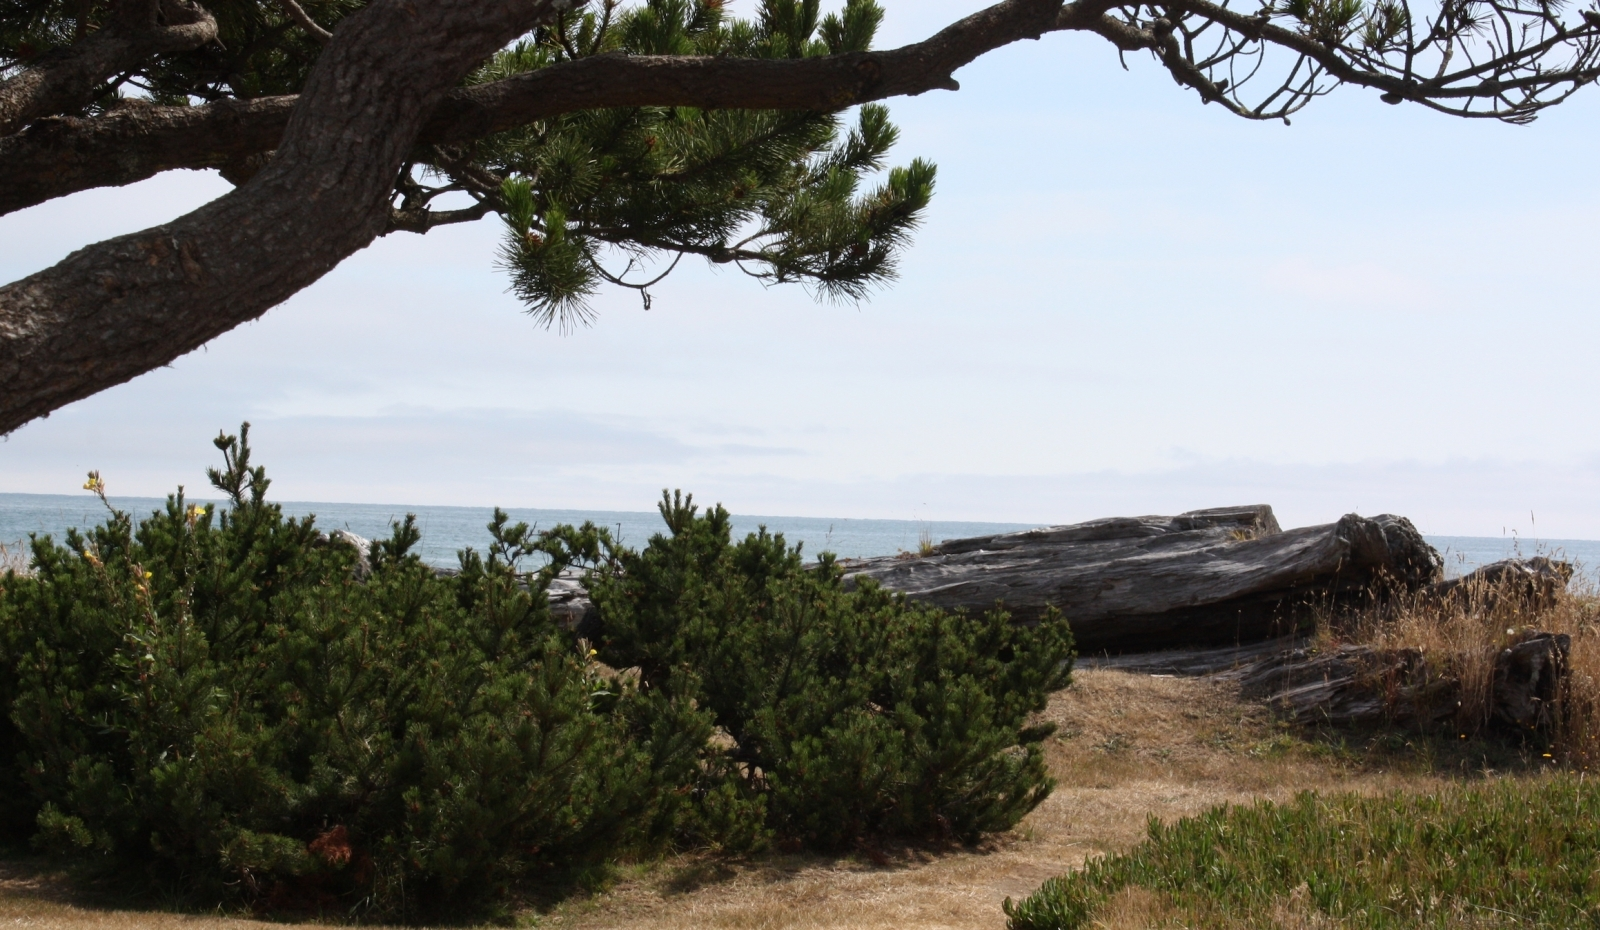 trees and shrubs on grassy hill overlooking ocean